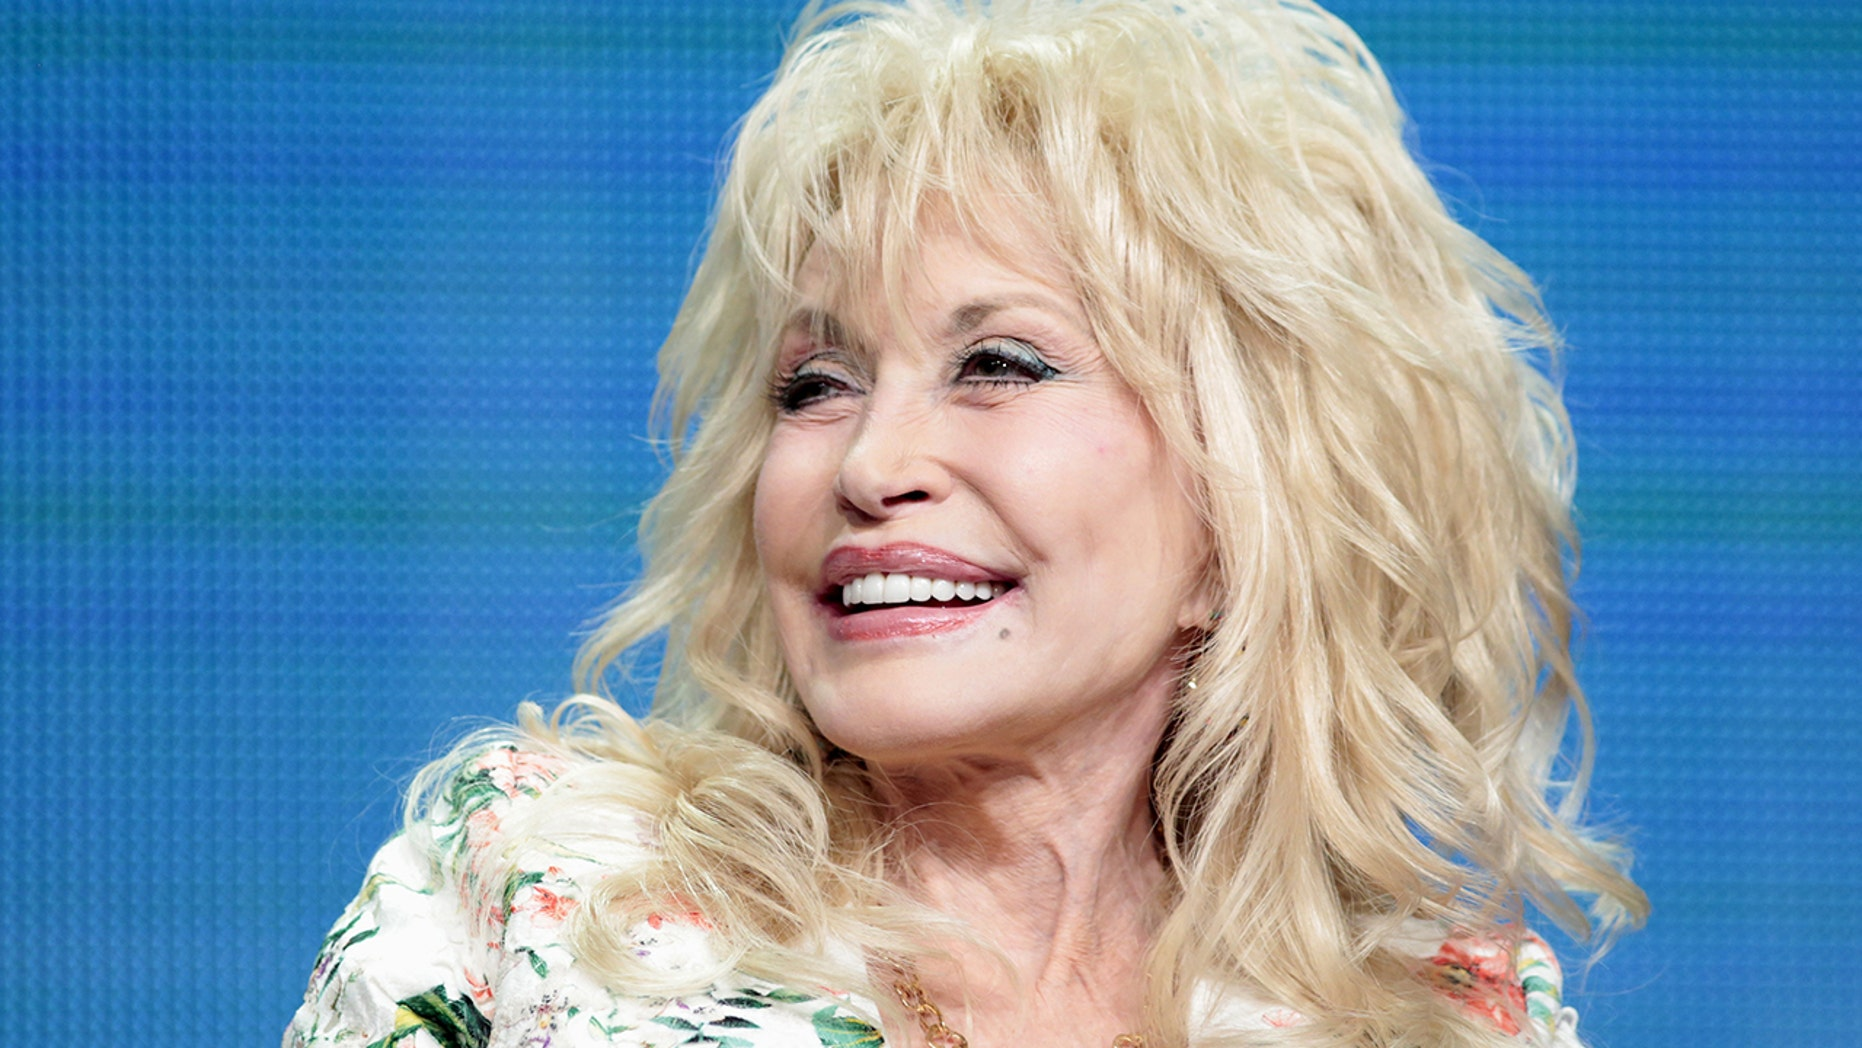 Dolly Parton's Dollywood amusement park won an award for having the best food.